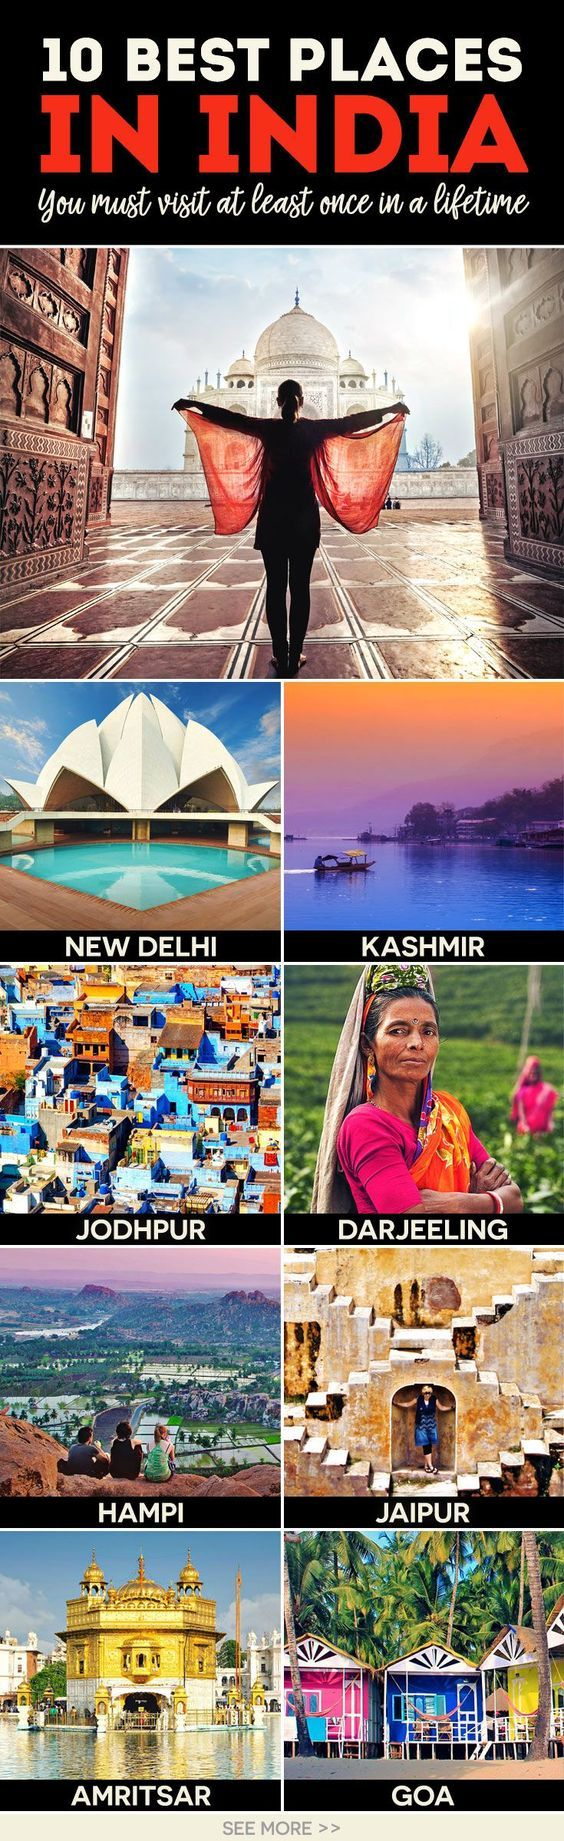 Travel India | Things to do and places to see | Golden Temple in Amritsar | 10 Best Places To Visit In India | via /Just1WayTicket/